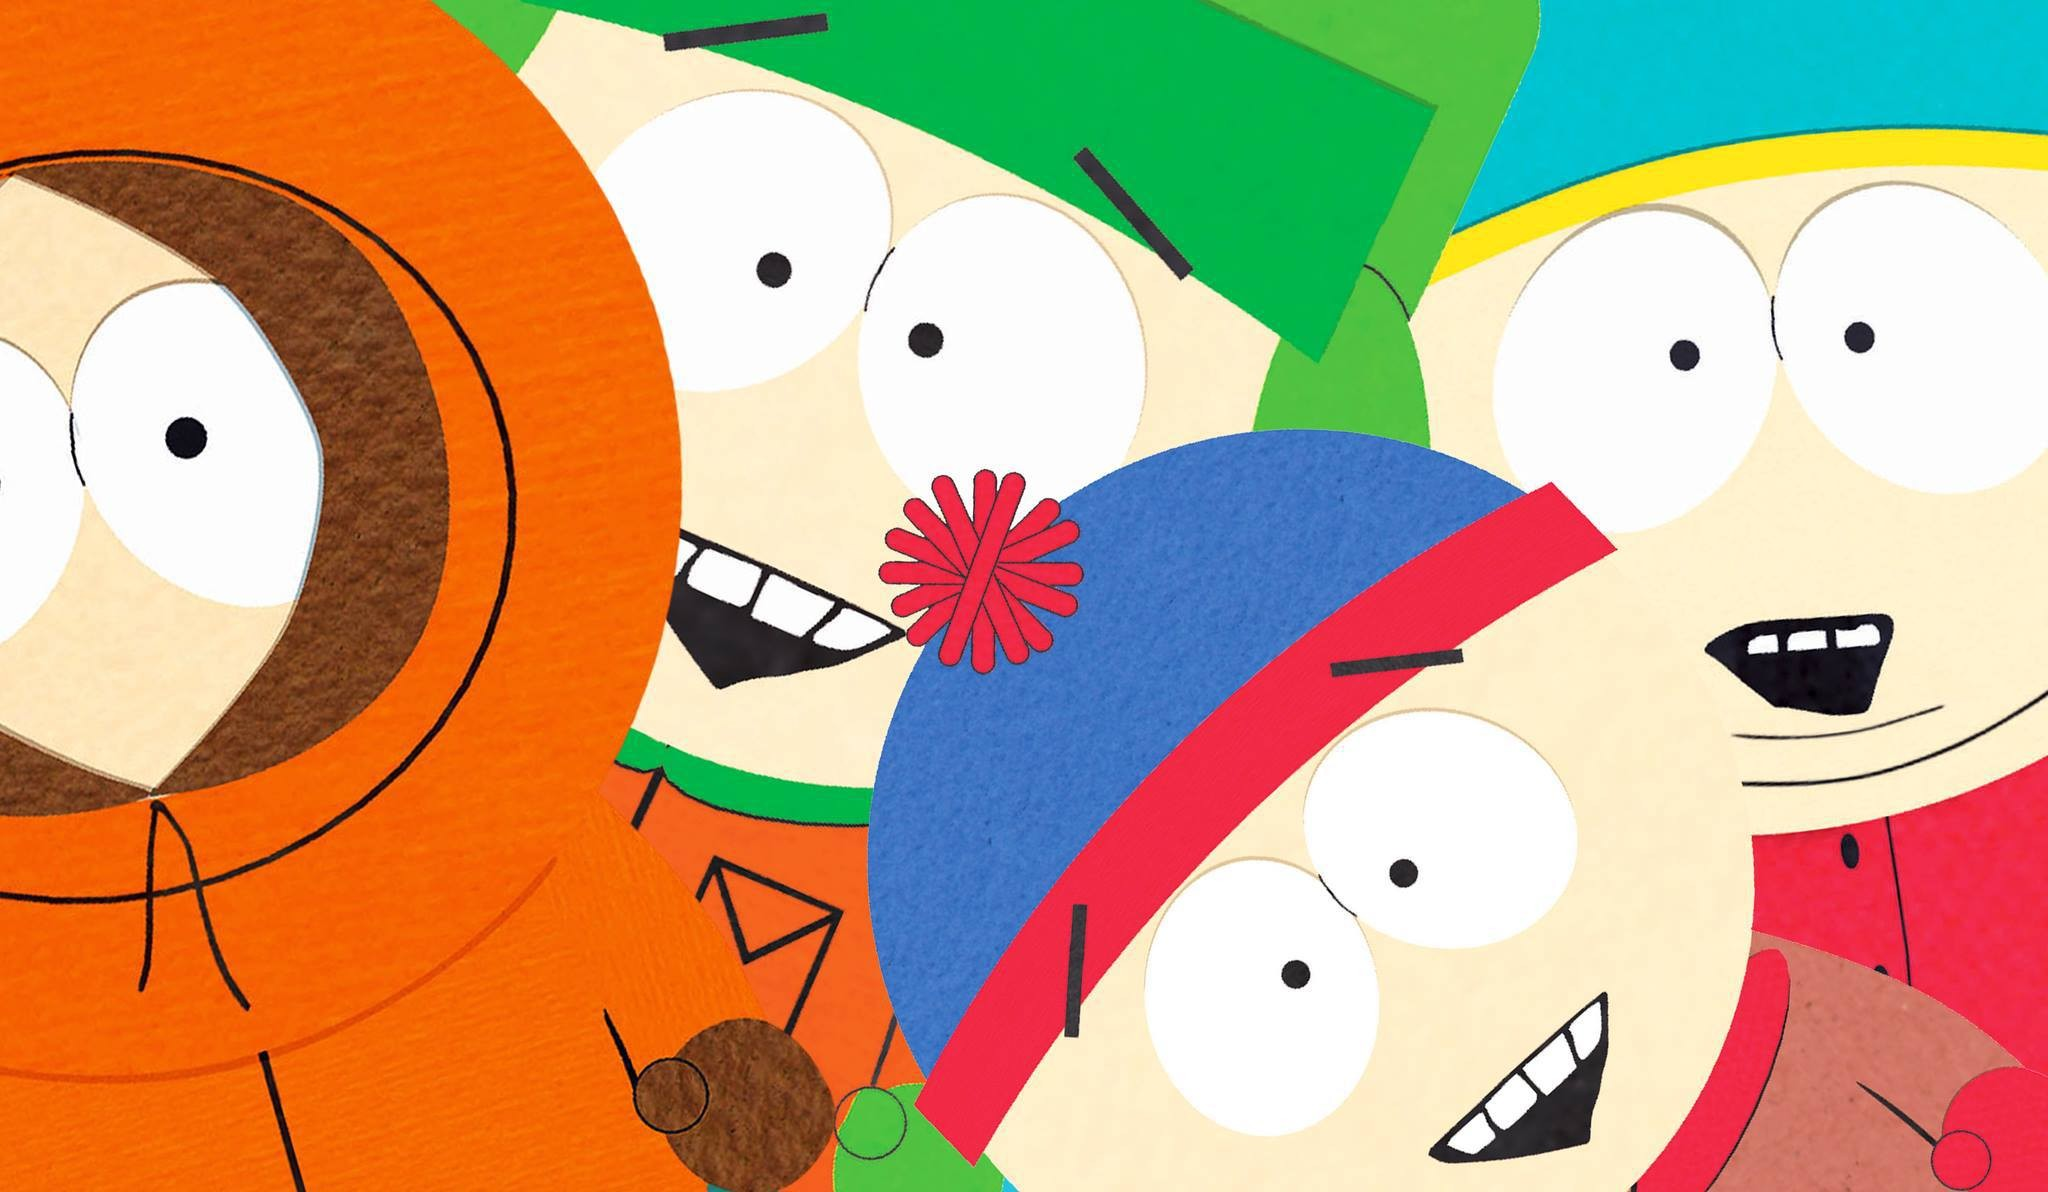 South Park Wallpaper Download Free Full Hd Backgrounds For